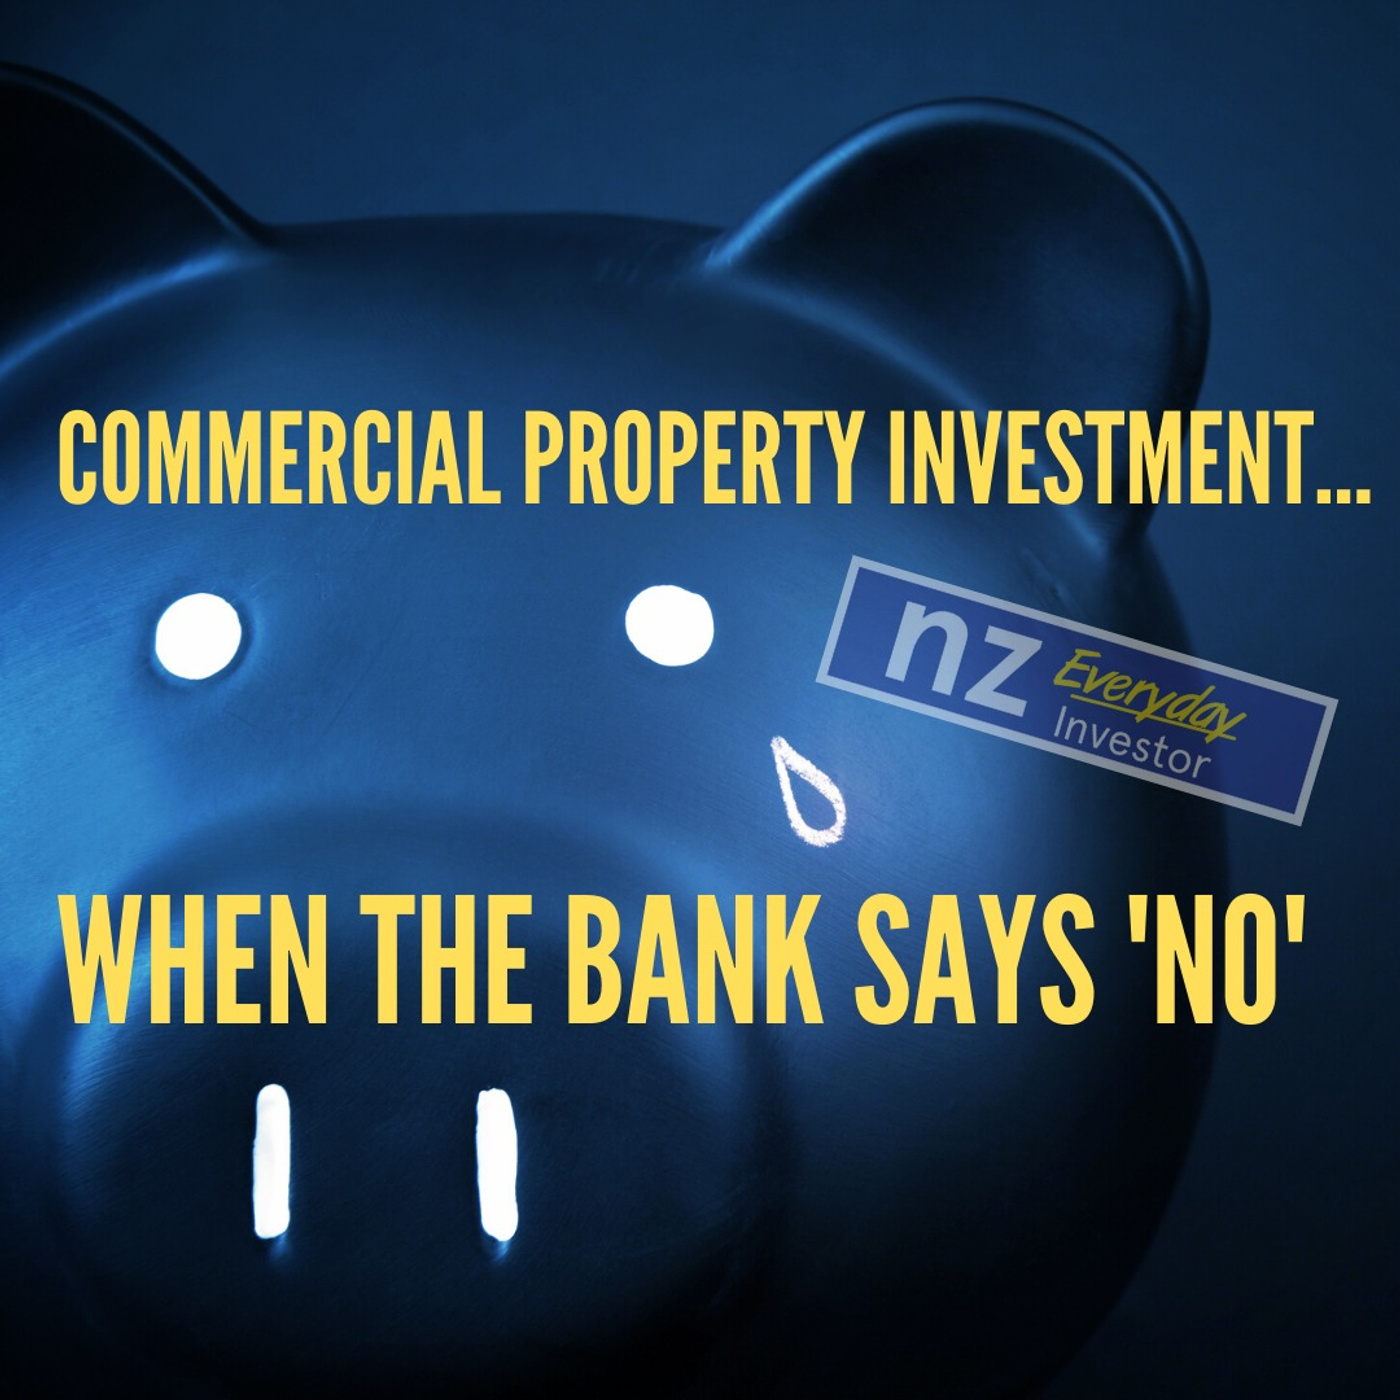 Commercial Property Investment when the bank says 'NO'